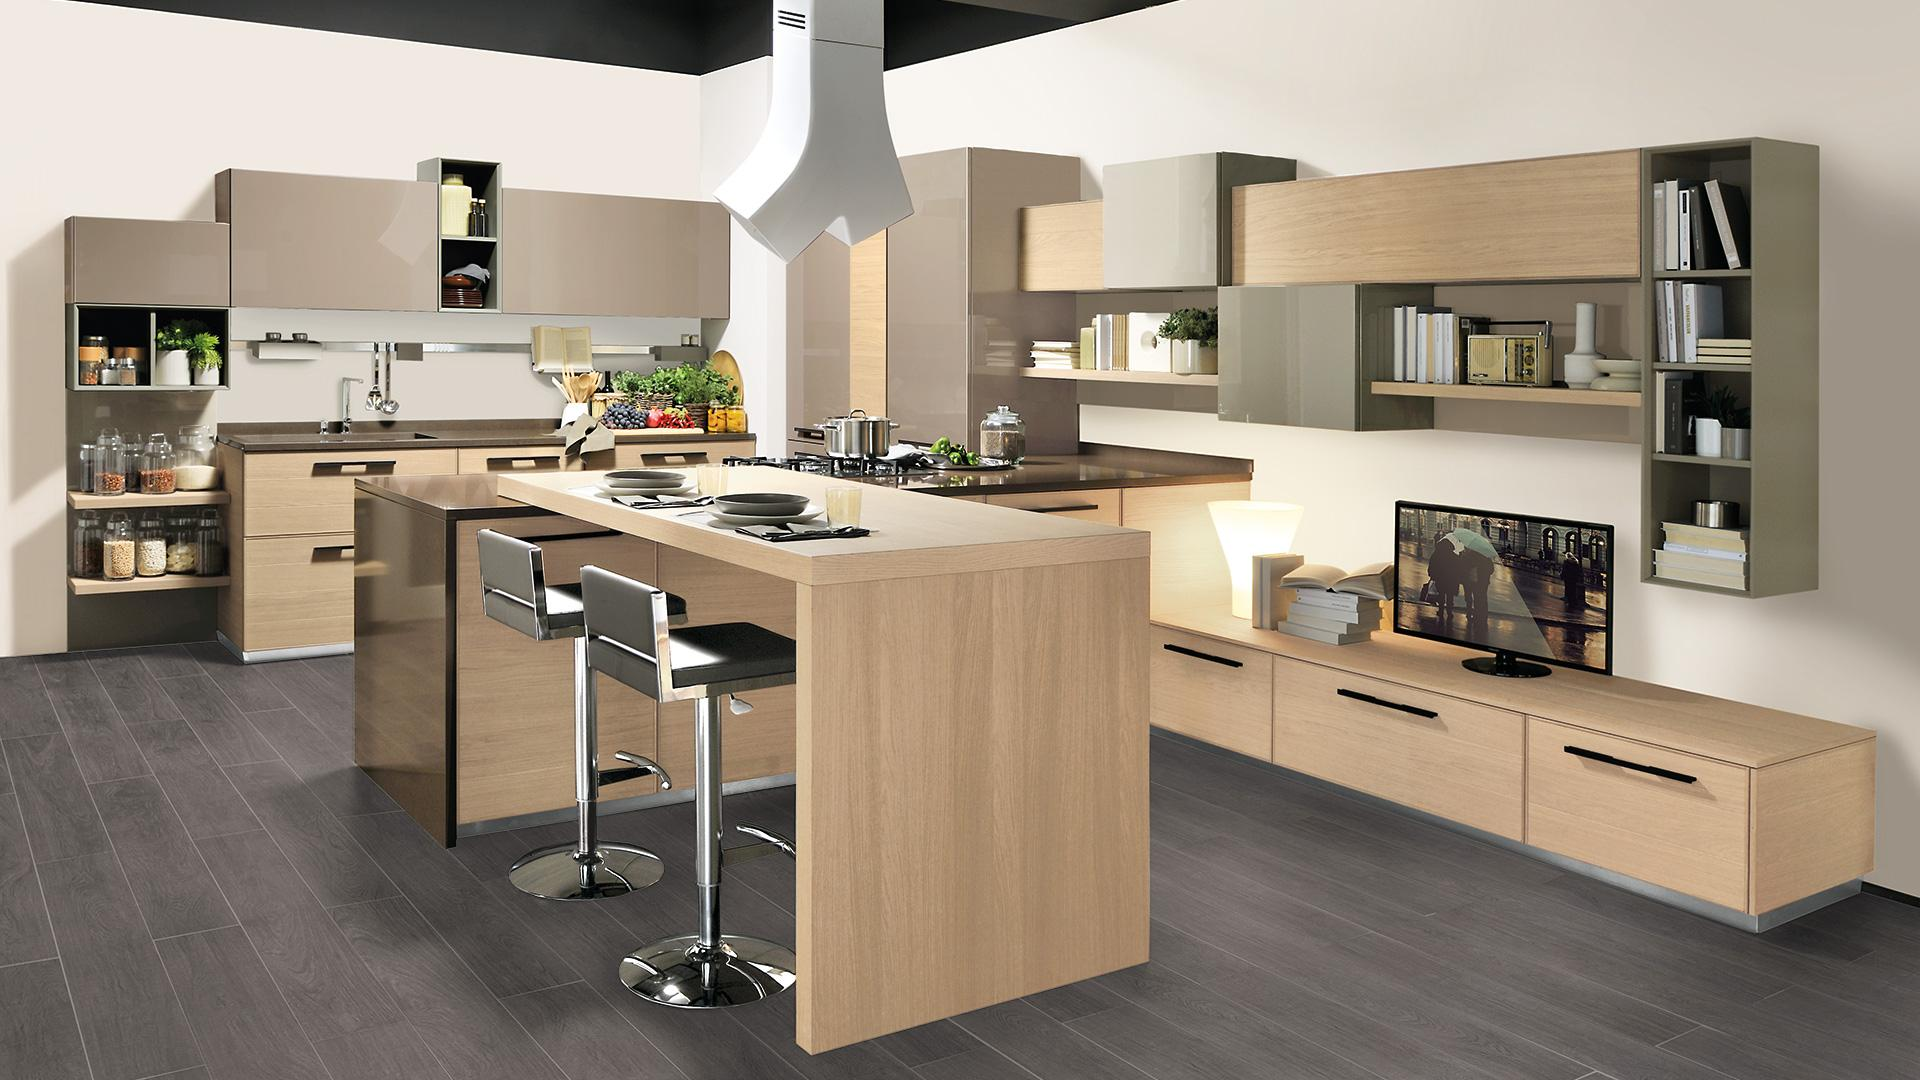 Lube adele project mobilia group divani cucine e for Cucine mobilia